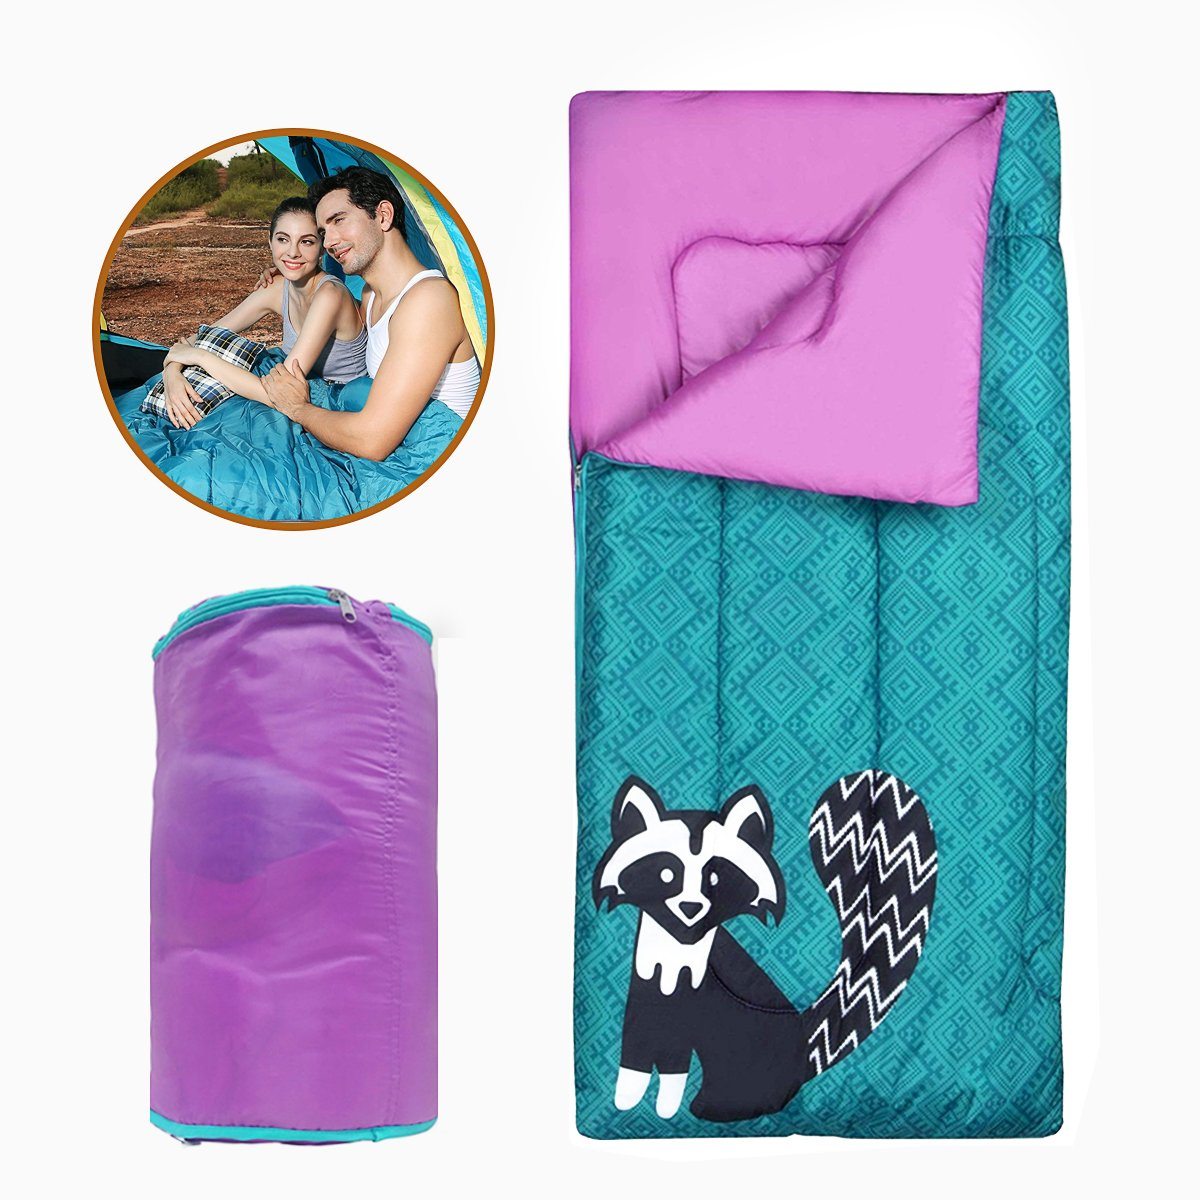 YoungRich Kids Sleeping Bag Youth Windproof Quilt Breathable Zipper Design Raccoon Pattern with Carrying Bag for Toddler Kids Children Indoor Outdoor Use Home Hiking Travel Camping 140 x 70cm